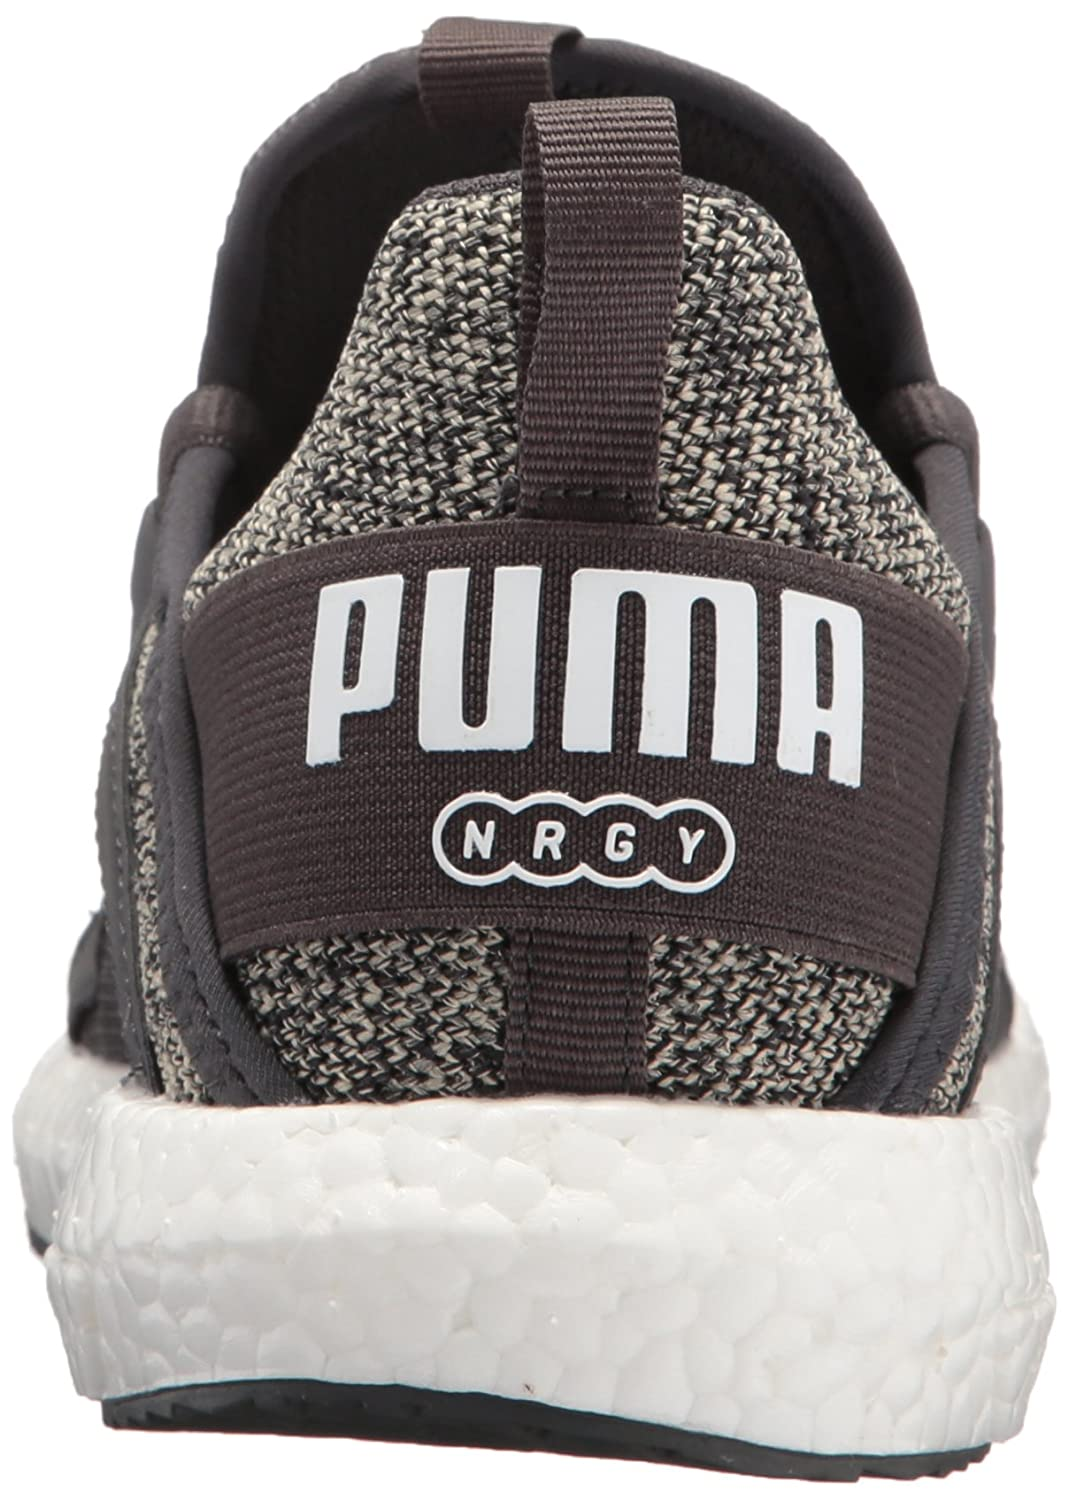 PUMA Womens Mega Nrgy Knit Low Top Lace Up Fashion Sneakers